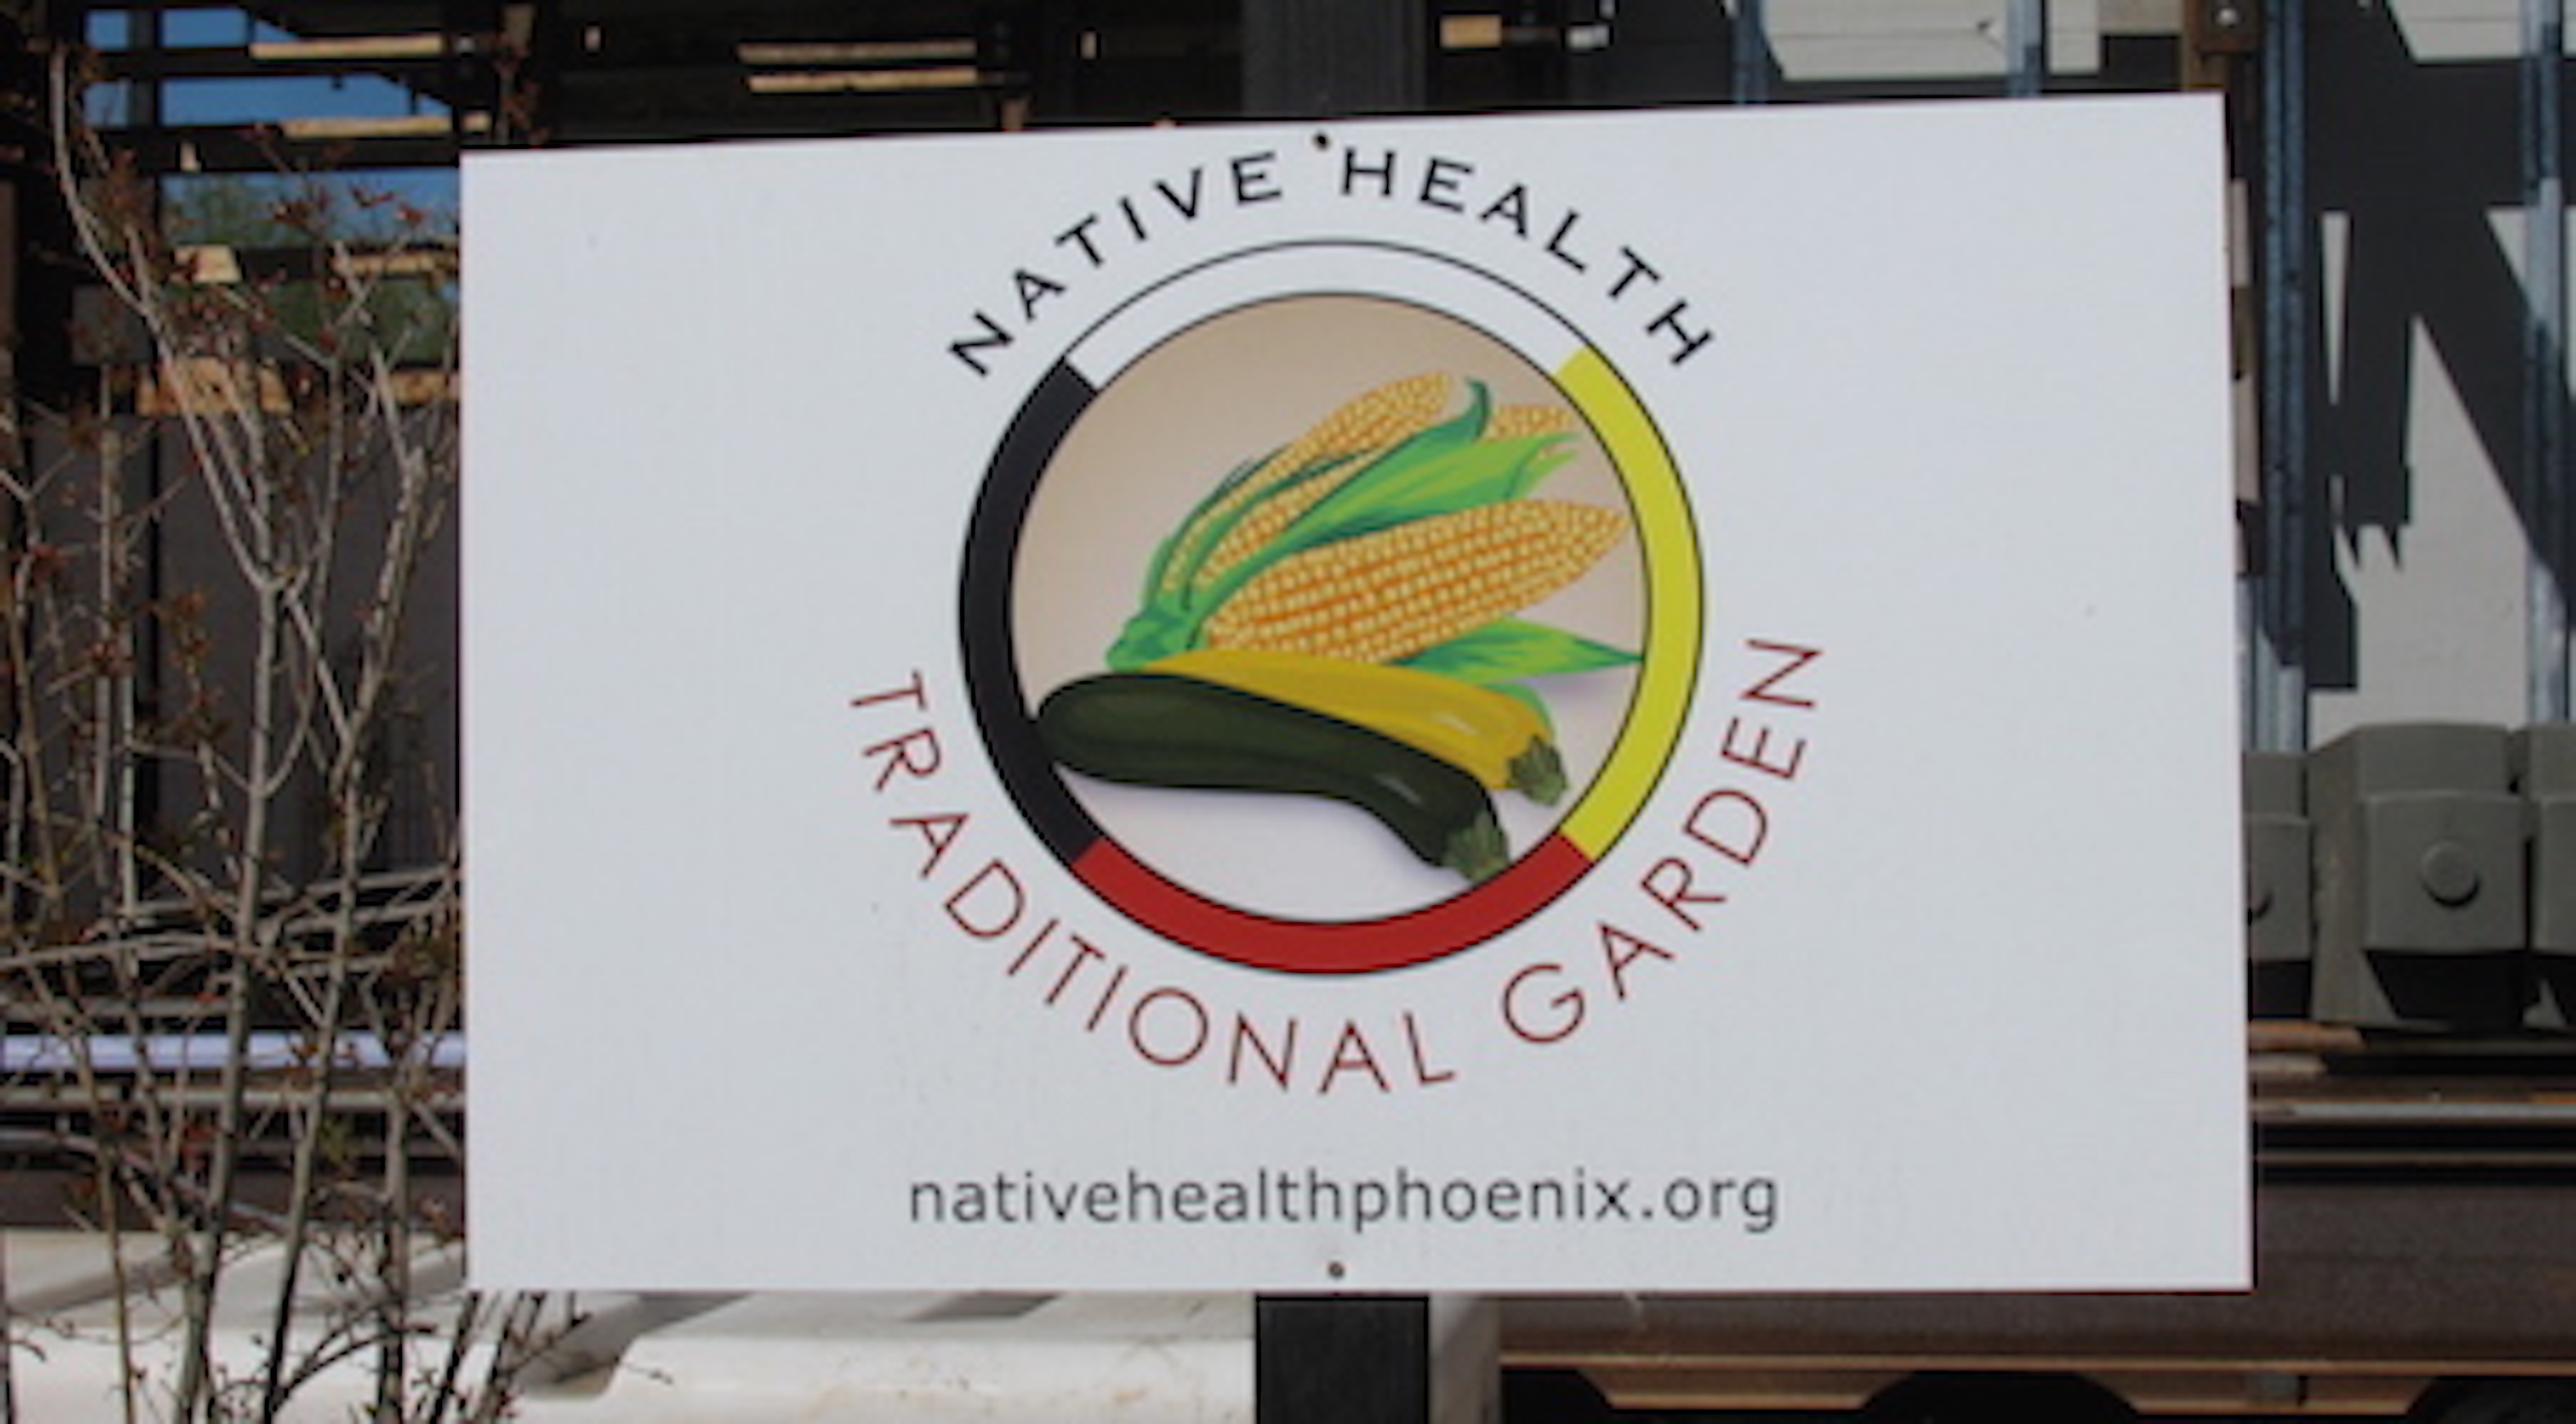 Native Health Traditional and Community Gardens in Phoenix, AZ